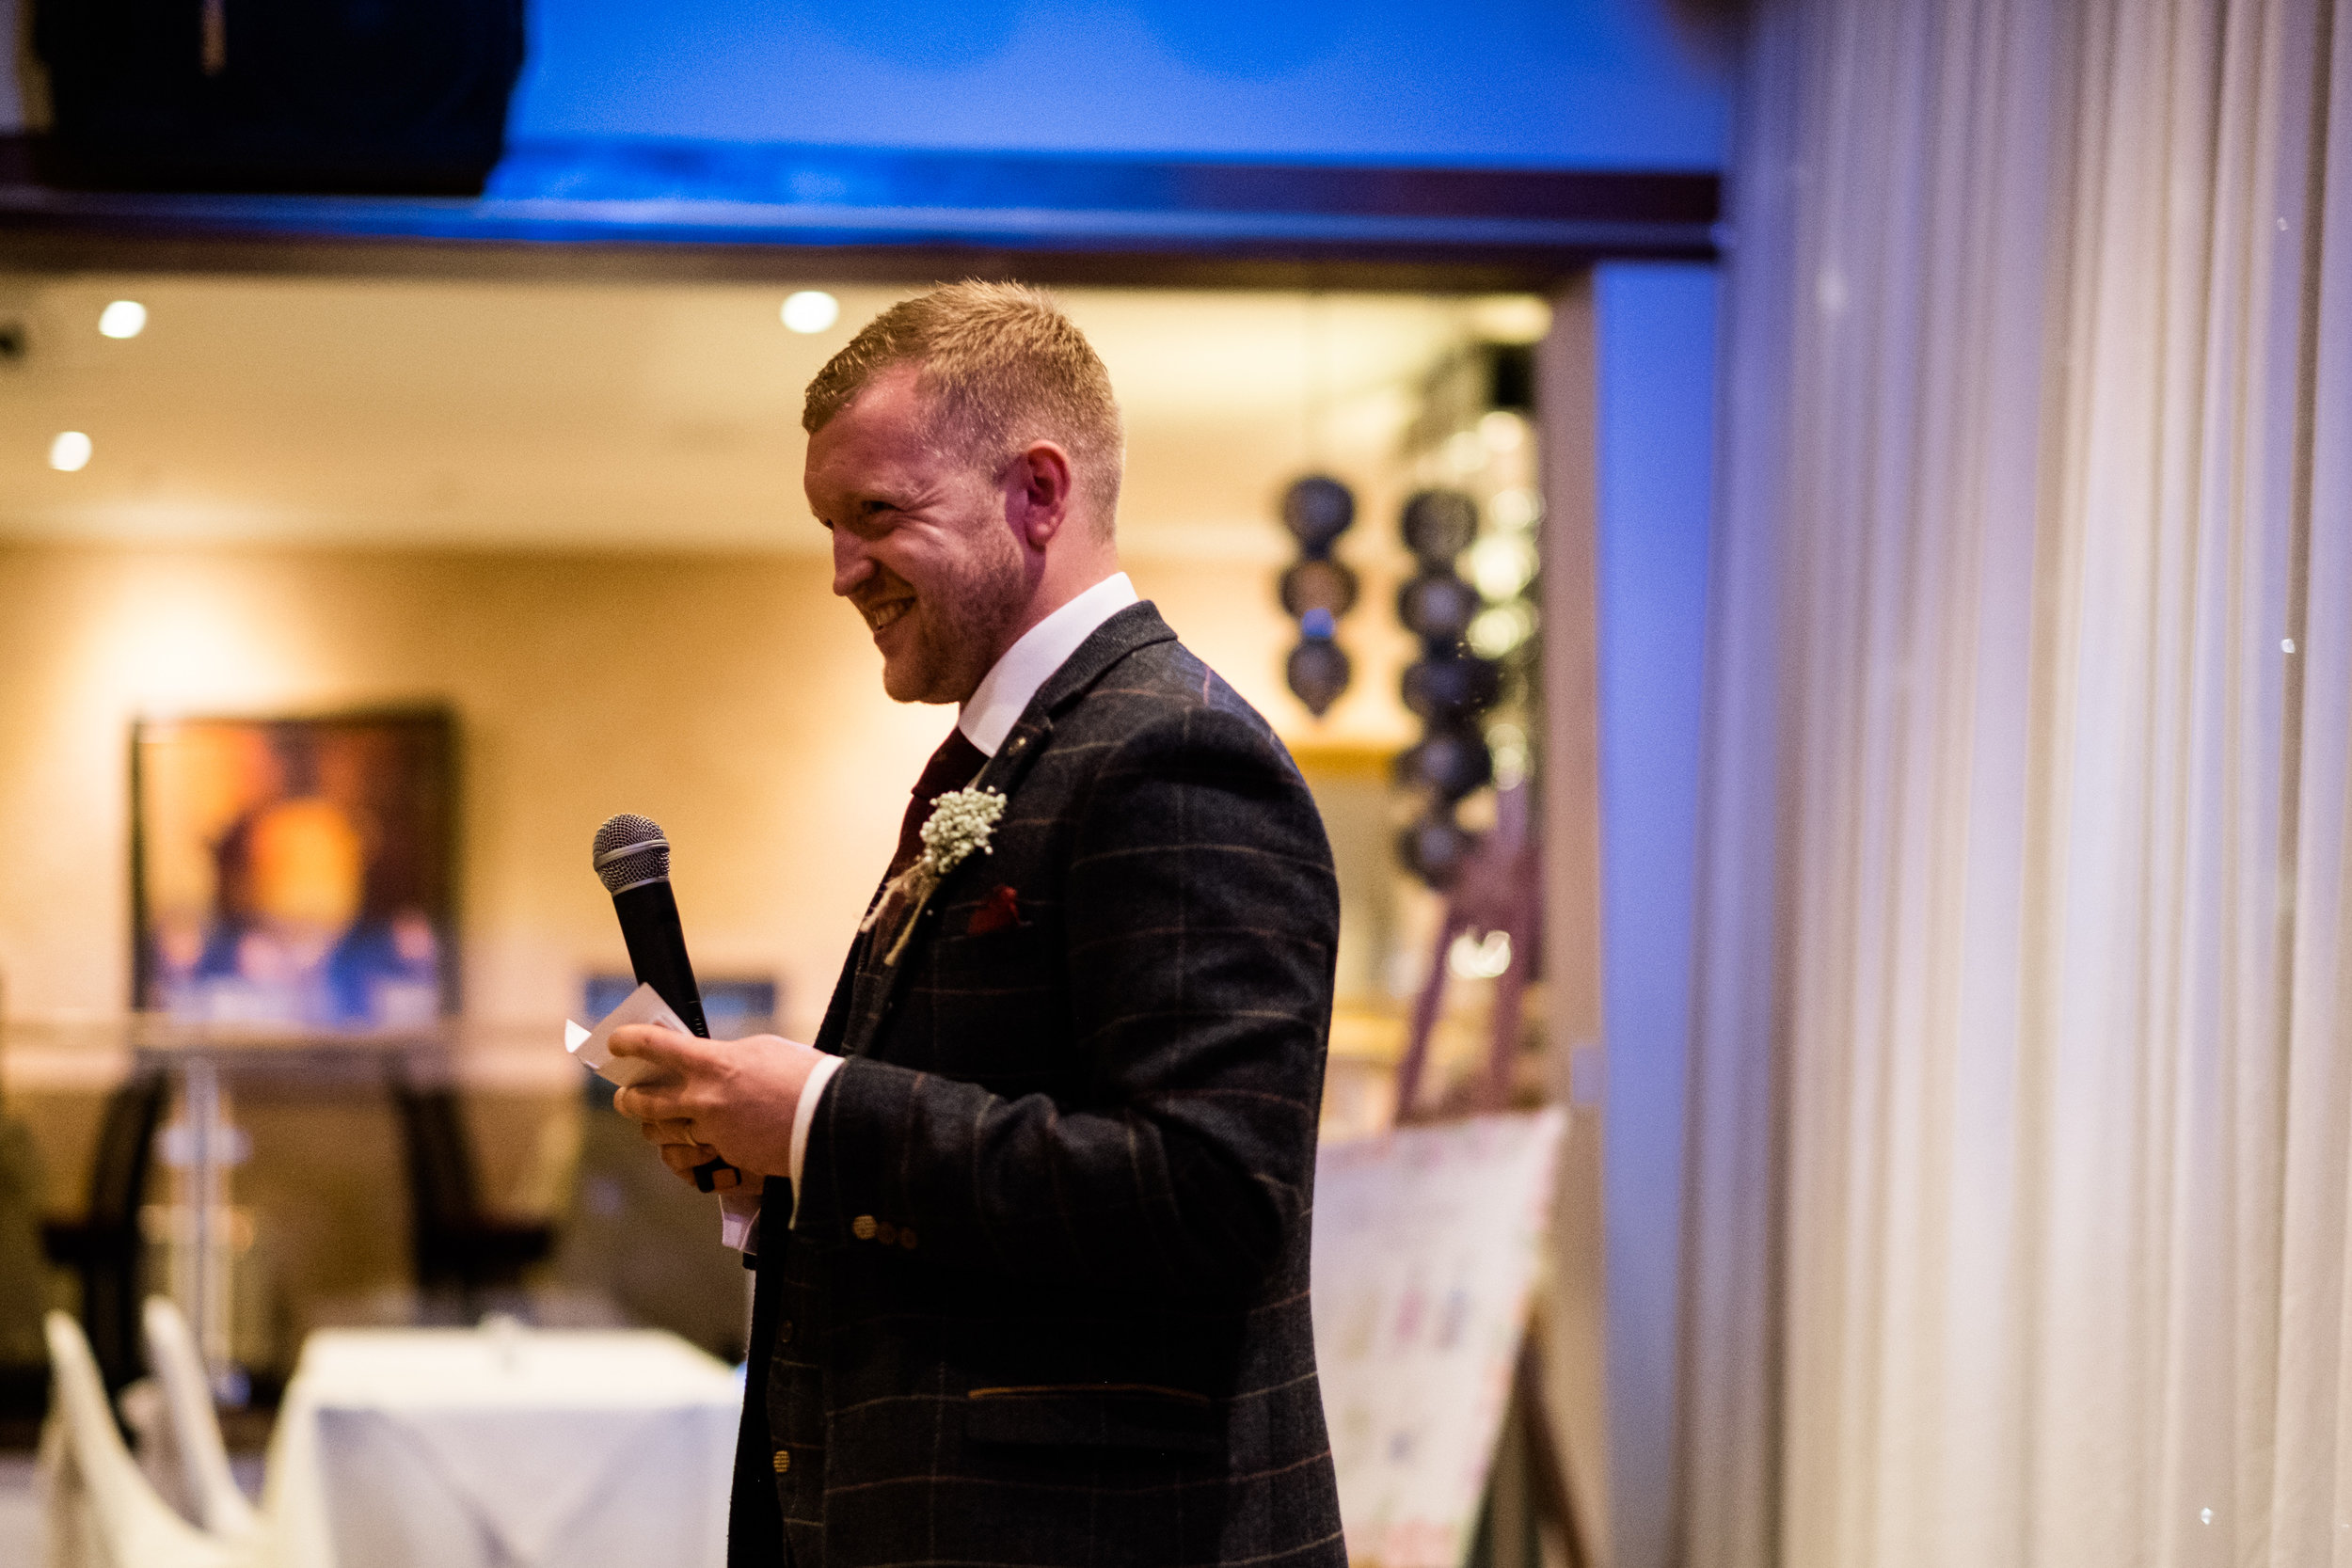 Autumn Wedding Photography at The Three Horseshoes, Blackshaw Moor, Staffordshire Moorlands - Jenny Harper-46.jpg